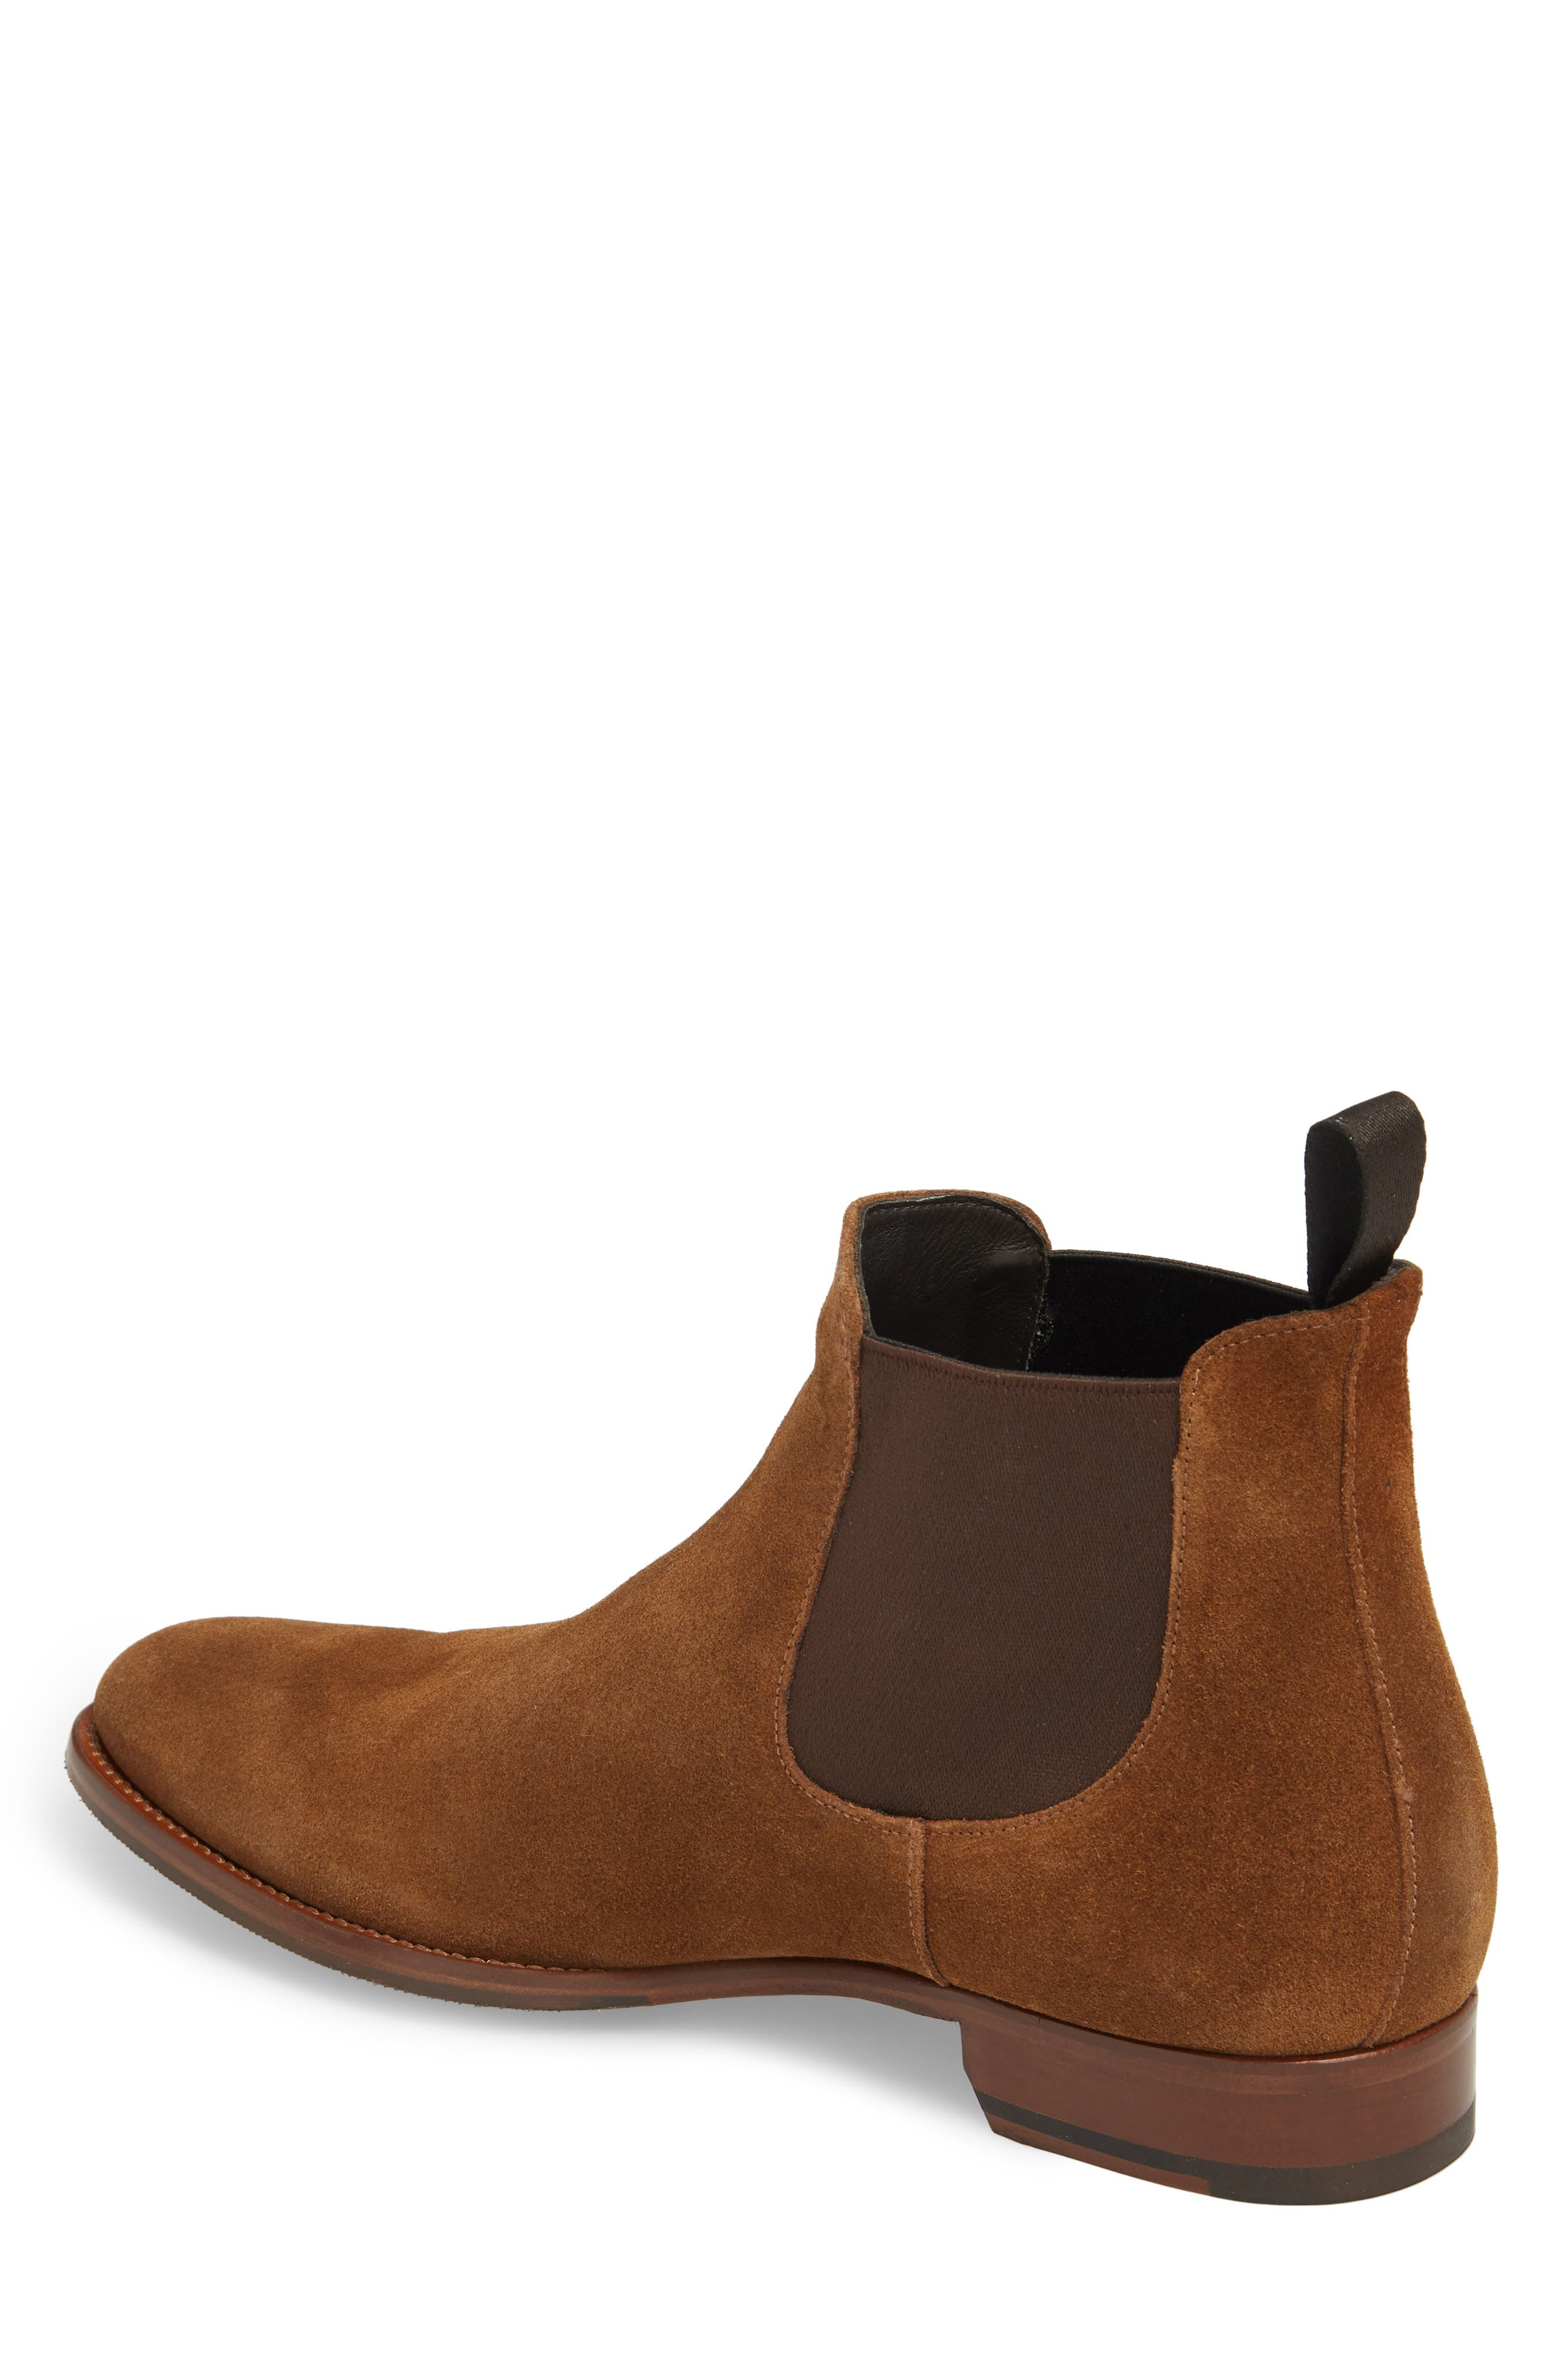 Shelby Mid Chelsea Boot,                             Alternate thumbnail 2, color,                             BROWN LEATHER